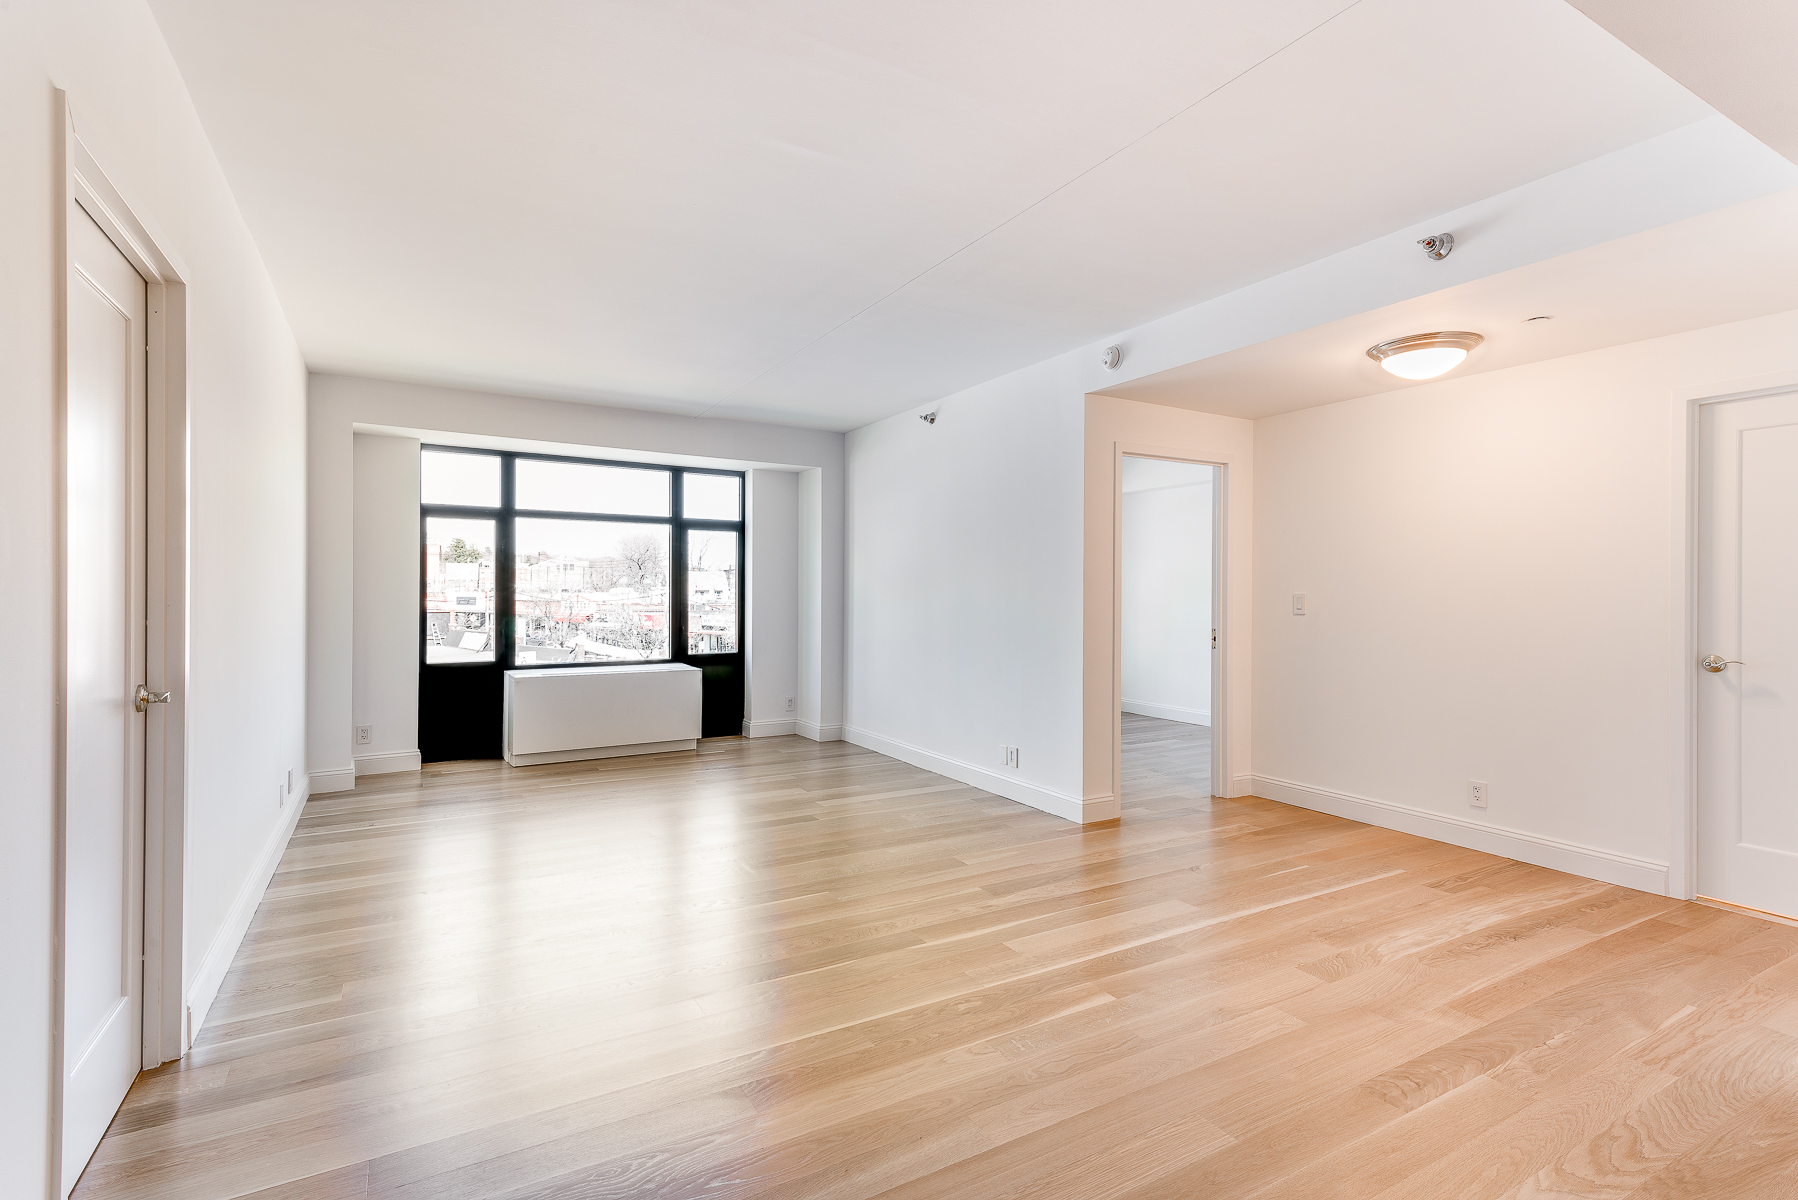 Condominio por un Venta en NEW 3 BR CONDO IN PRIME LOCATION 3536 Cambridge Avenue 5E Riverdale, Nueva York, 10463 Estados Unidos